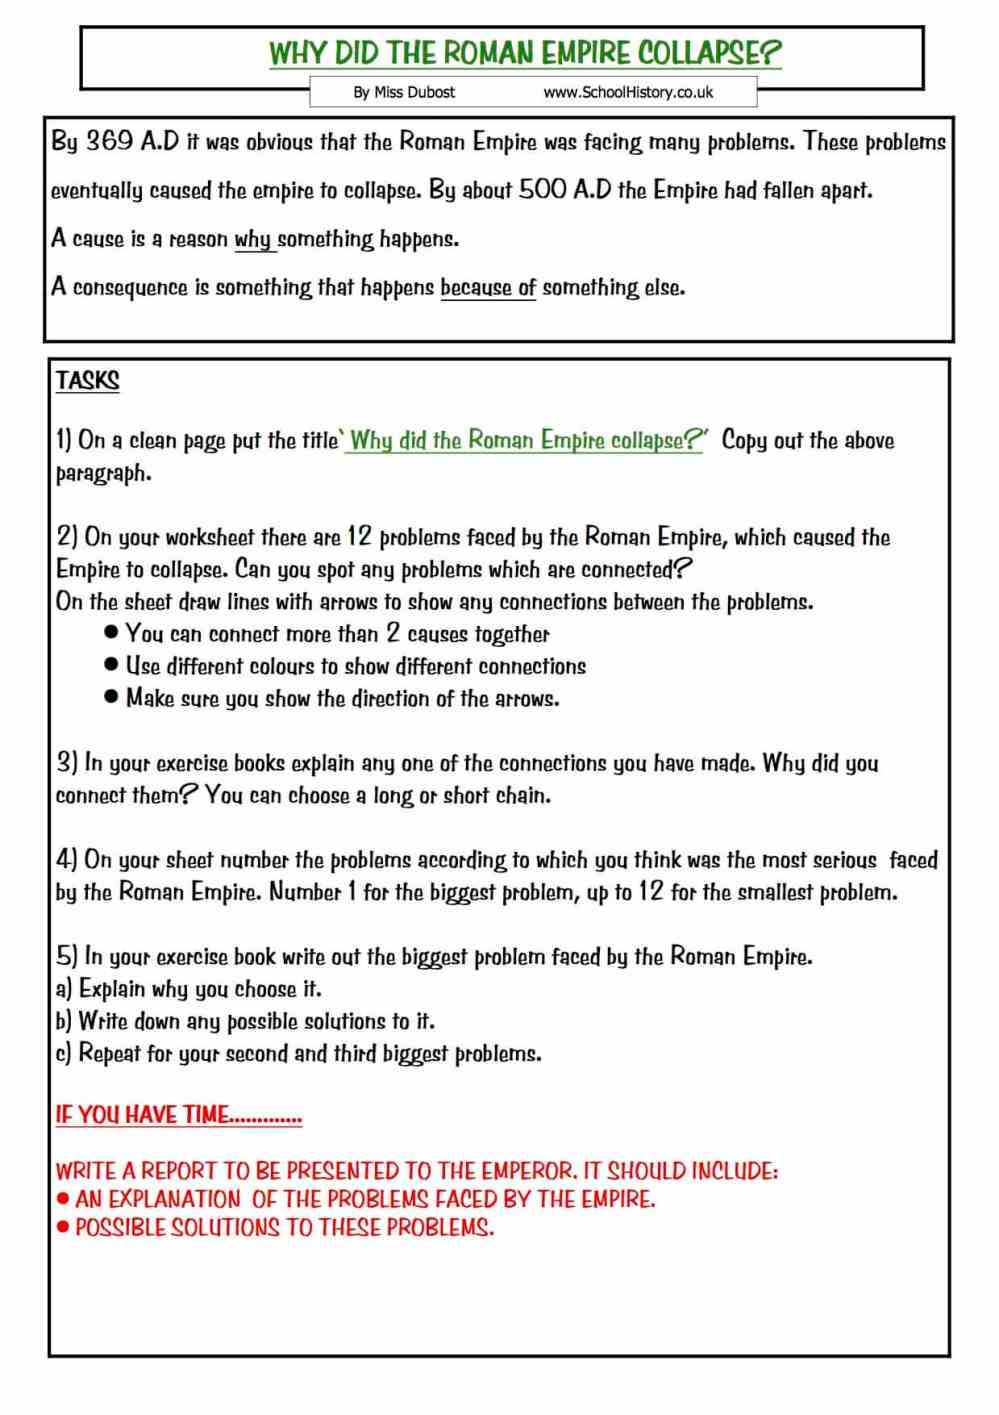 medium resolution of The Collapse of the Roman Empire   Year 7 Study Worksheet